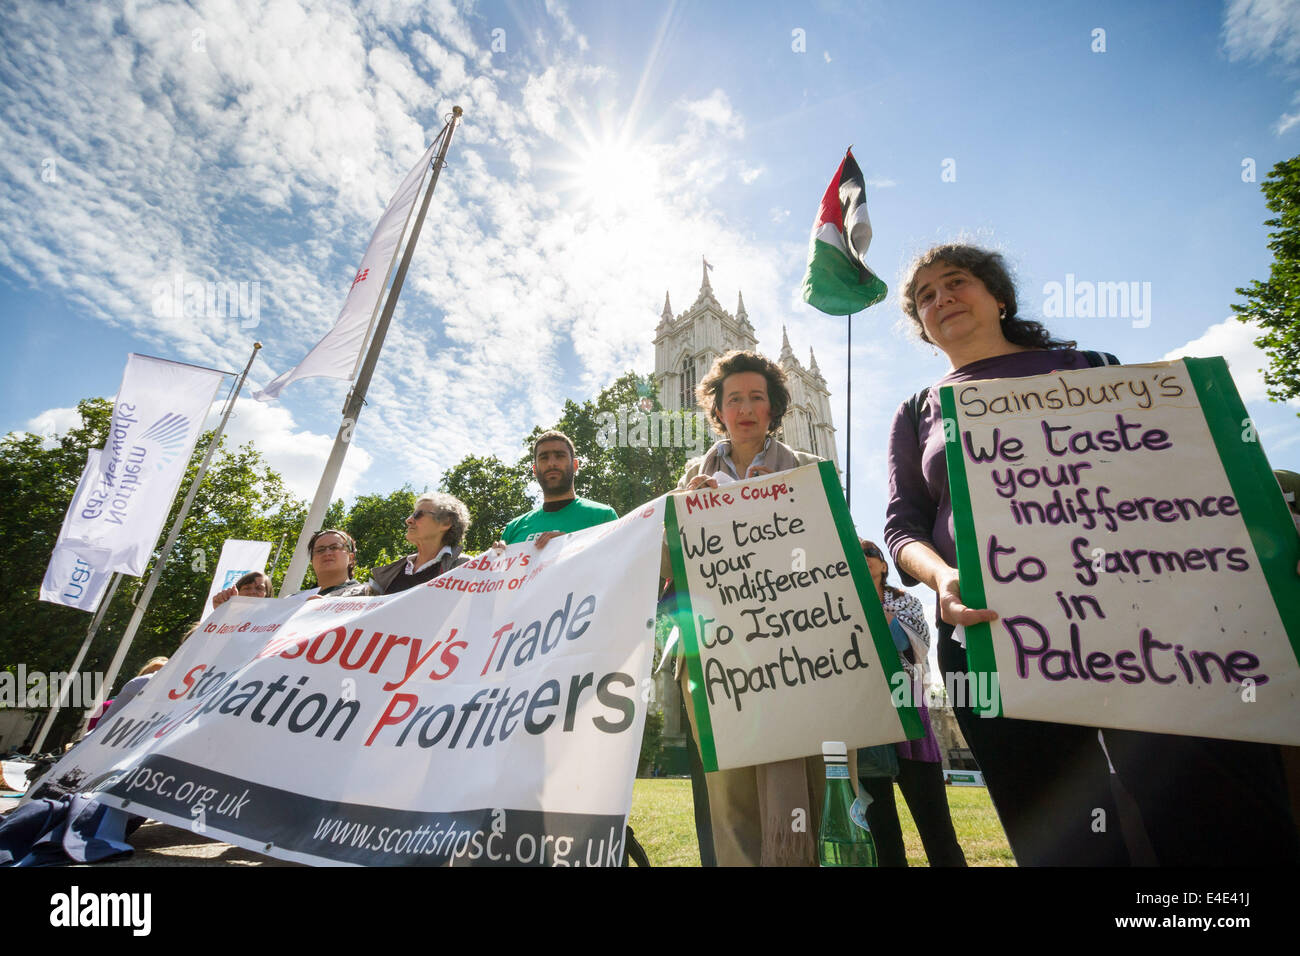 London, UK. 9th July 2014. Palestine Solidarity Campaign Protest at Sainsbury's AGM in London Credit:  Guy Corbishley/Alamy - Stock Image